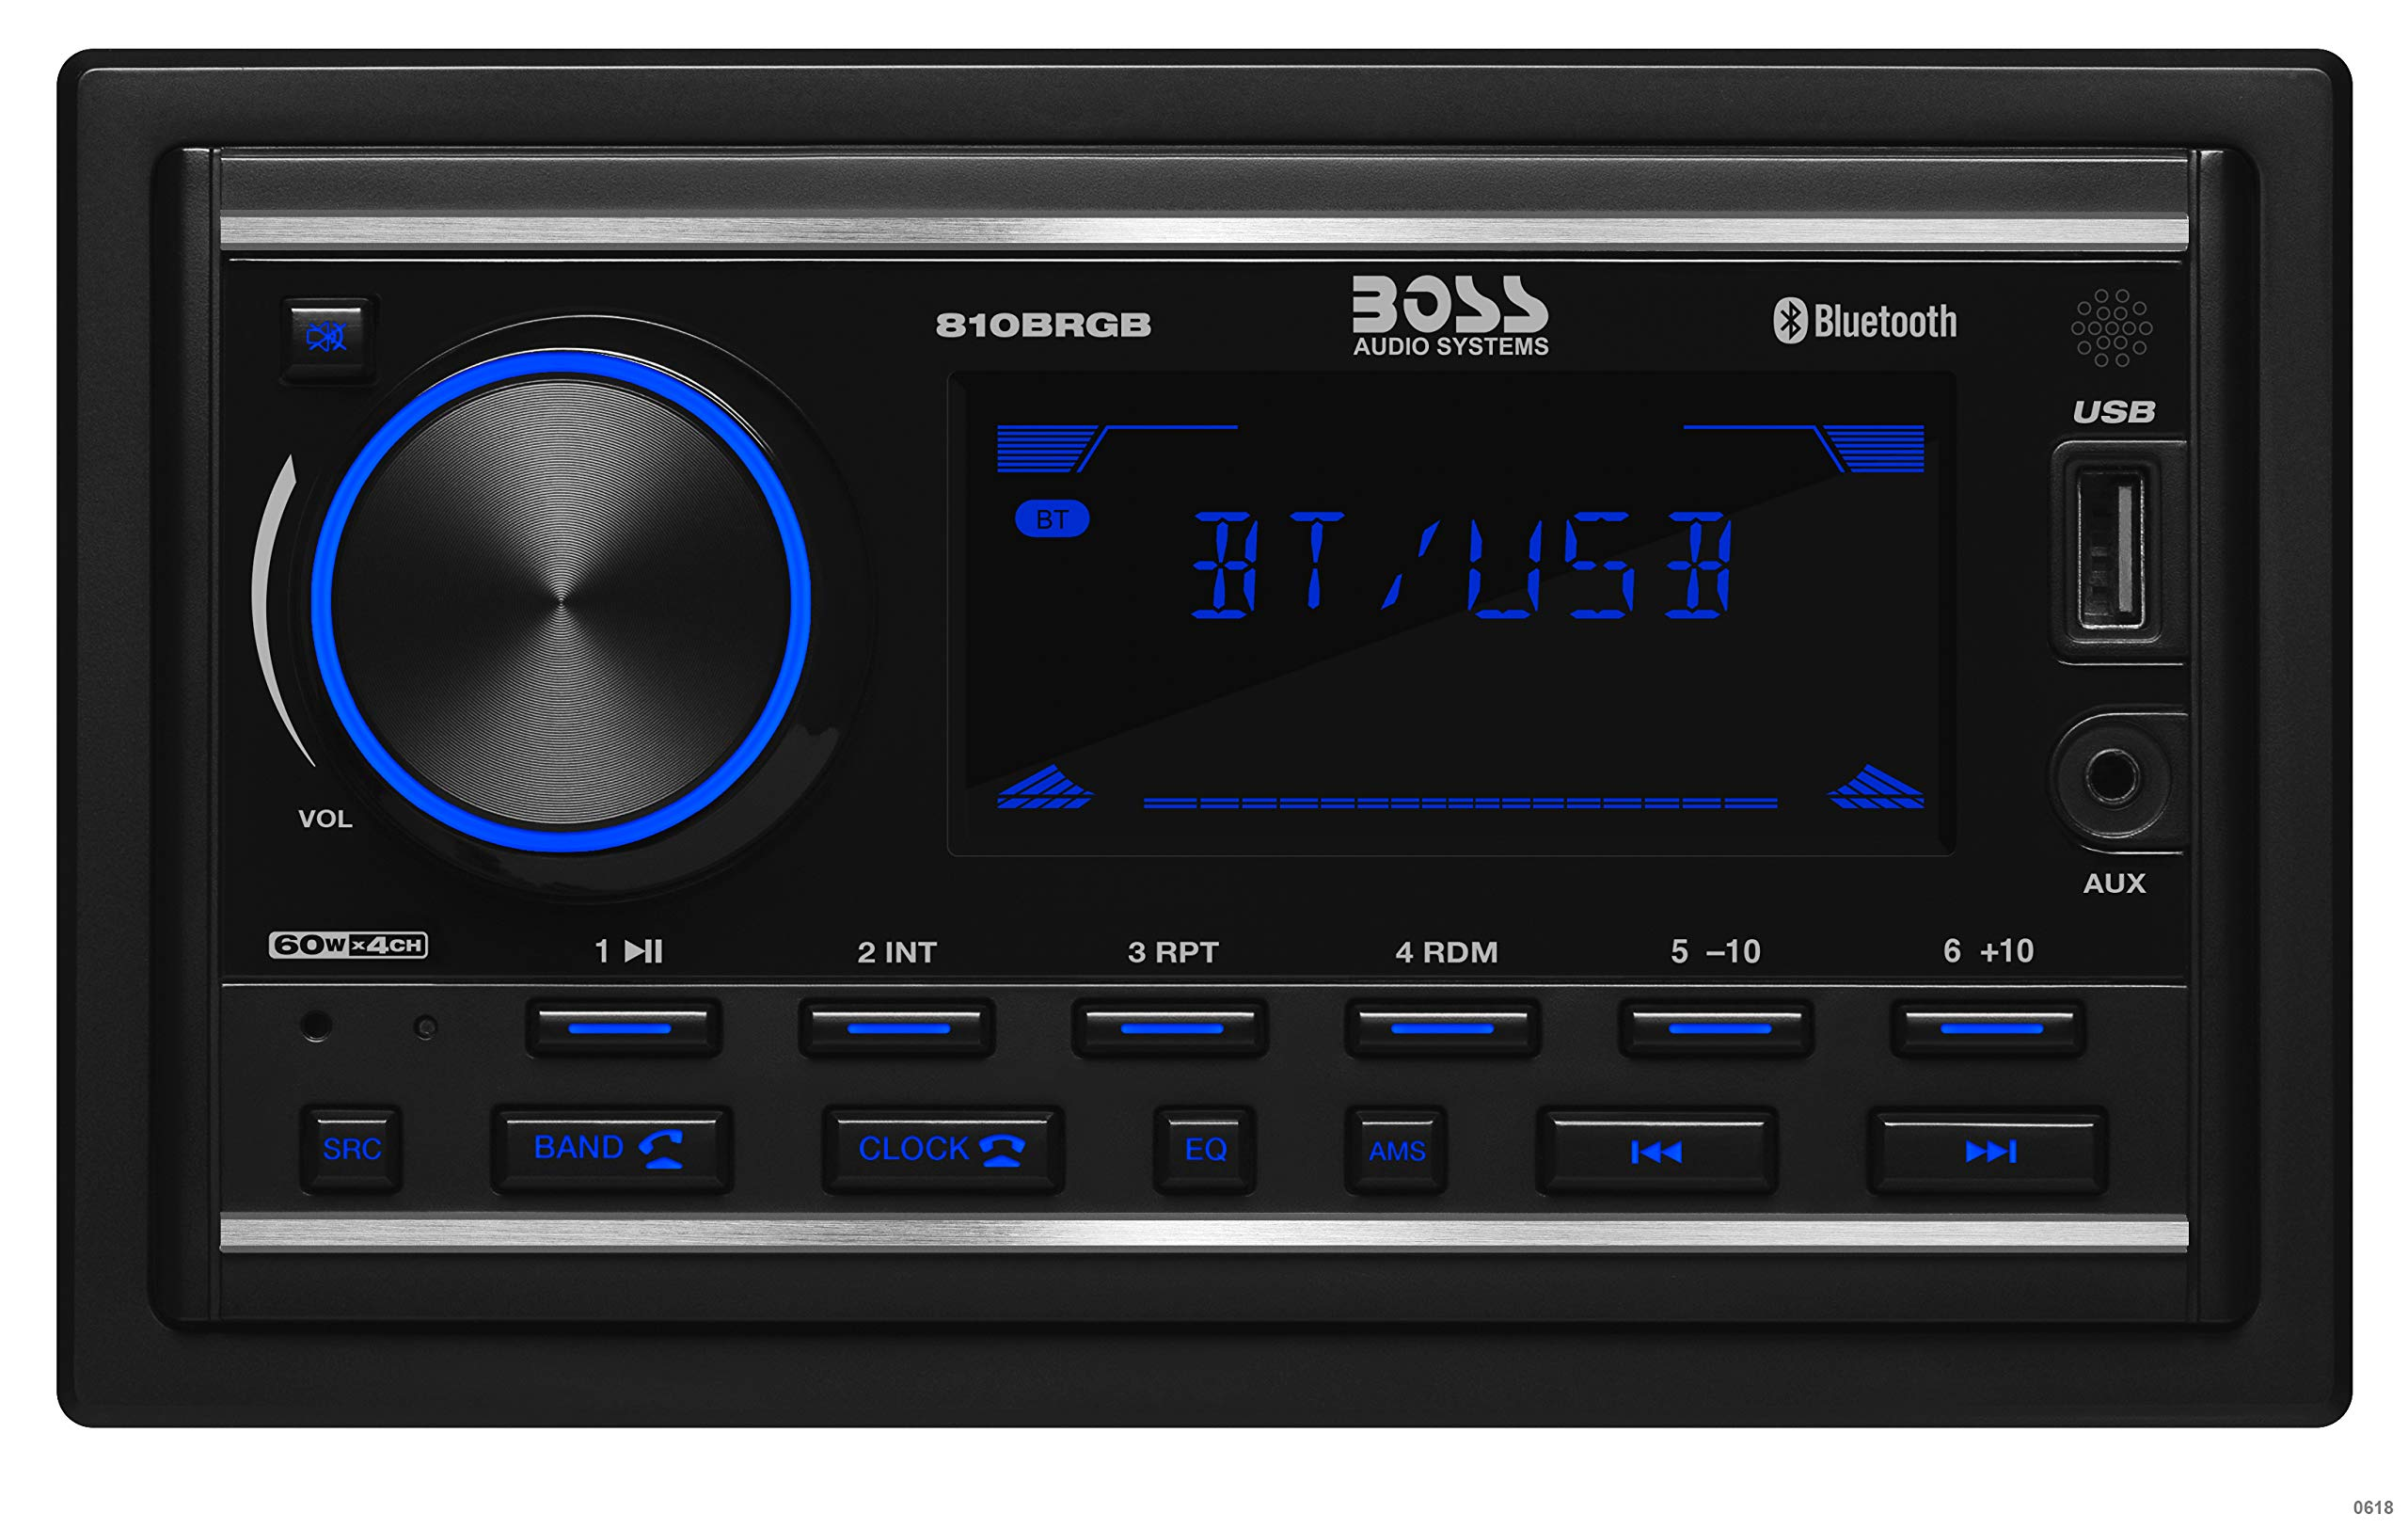 BOSS Audio Systems 810BRGB Multimedia Car Stereo - Double Din, Bluetooth Audio and Calling, MP3 Player, USB Port, AUX Input, AM FM Radio Receiver, - no CD DVD, Multi Color Illumination by BOSS Audio Systems